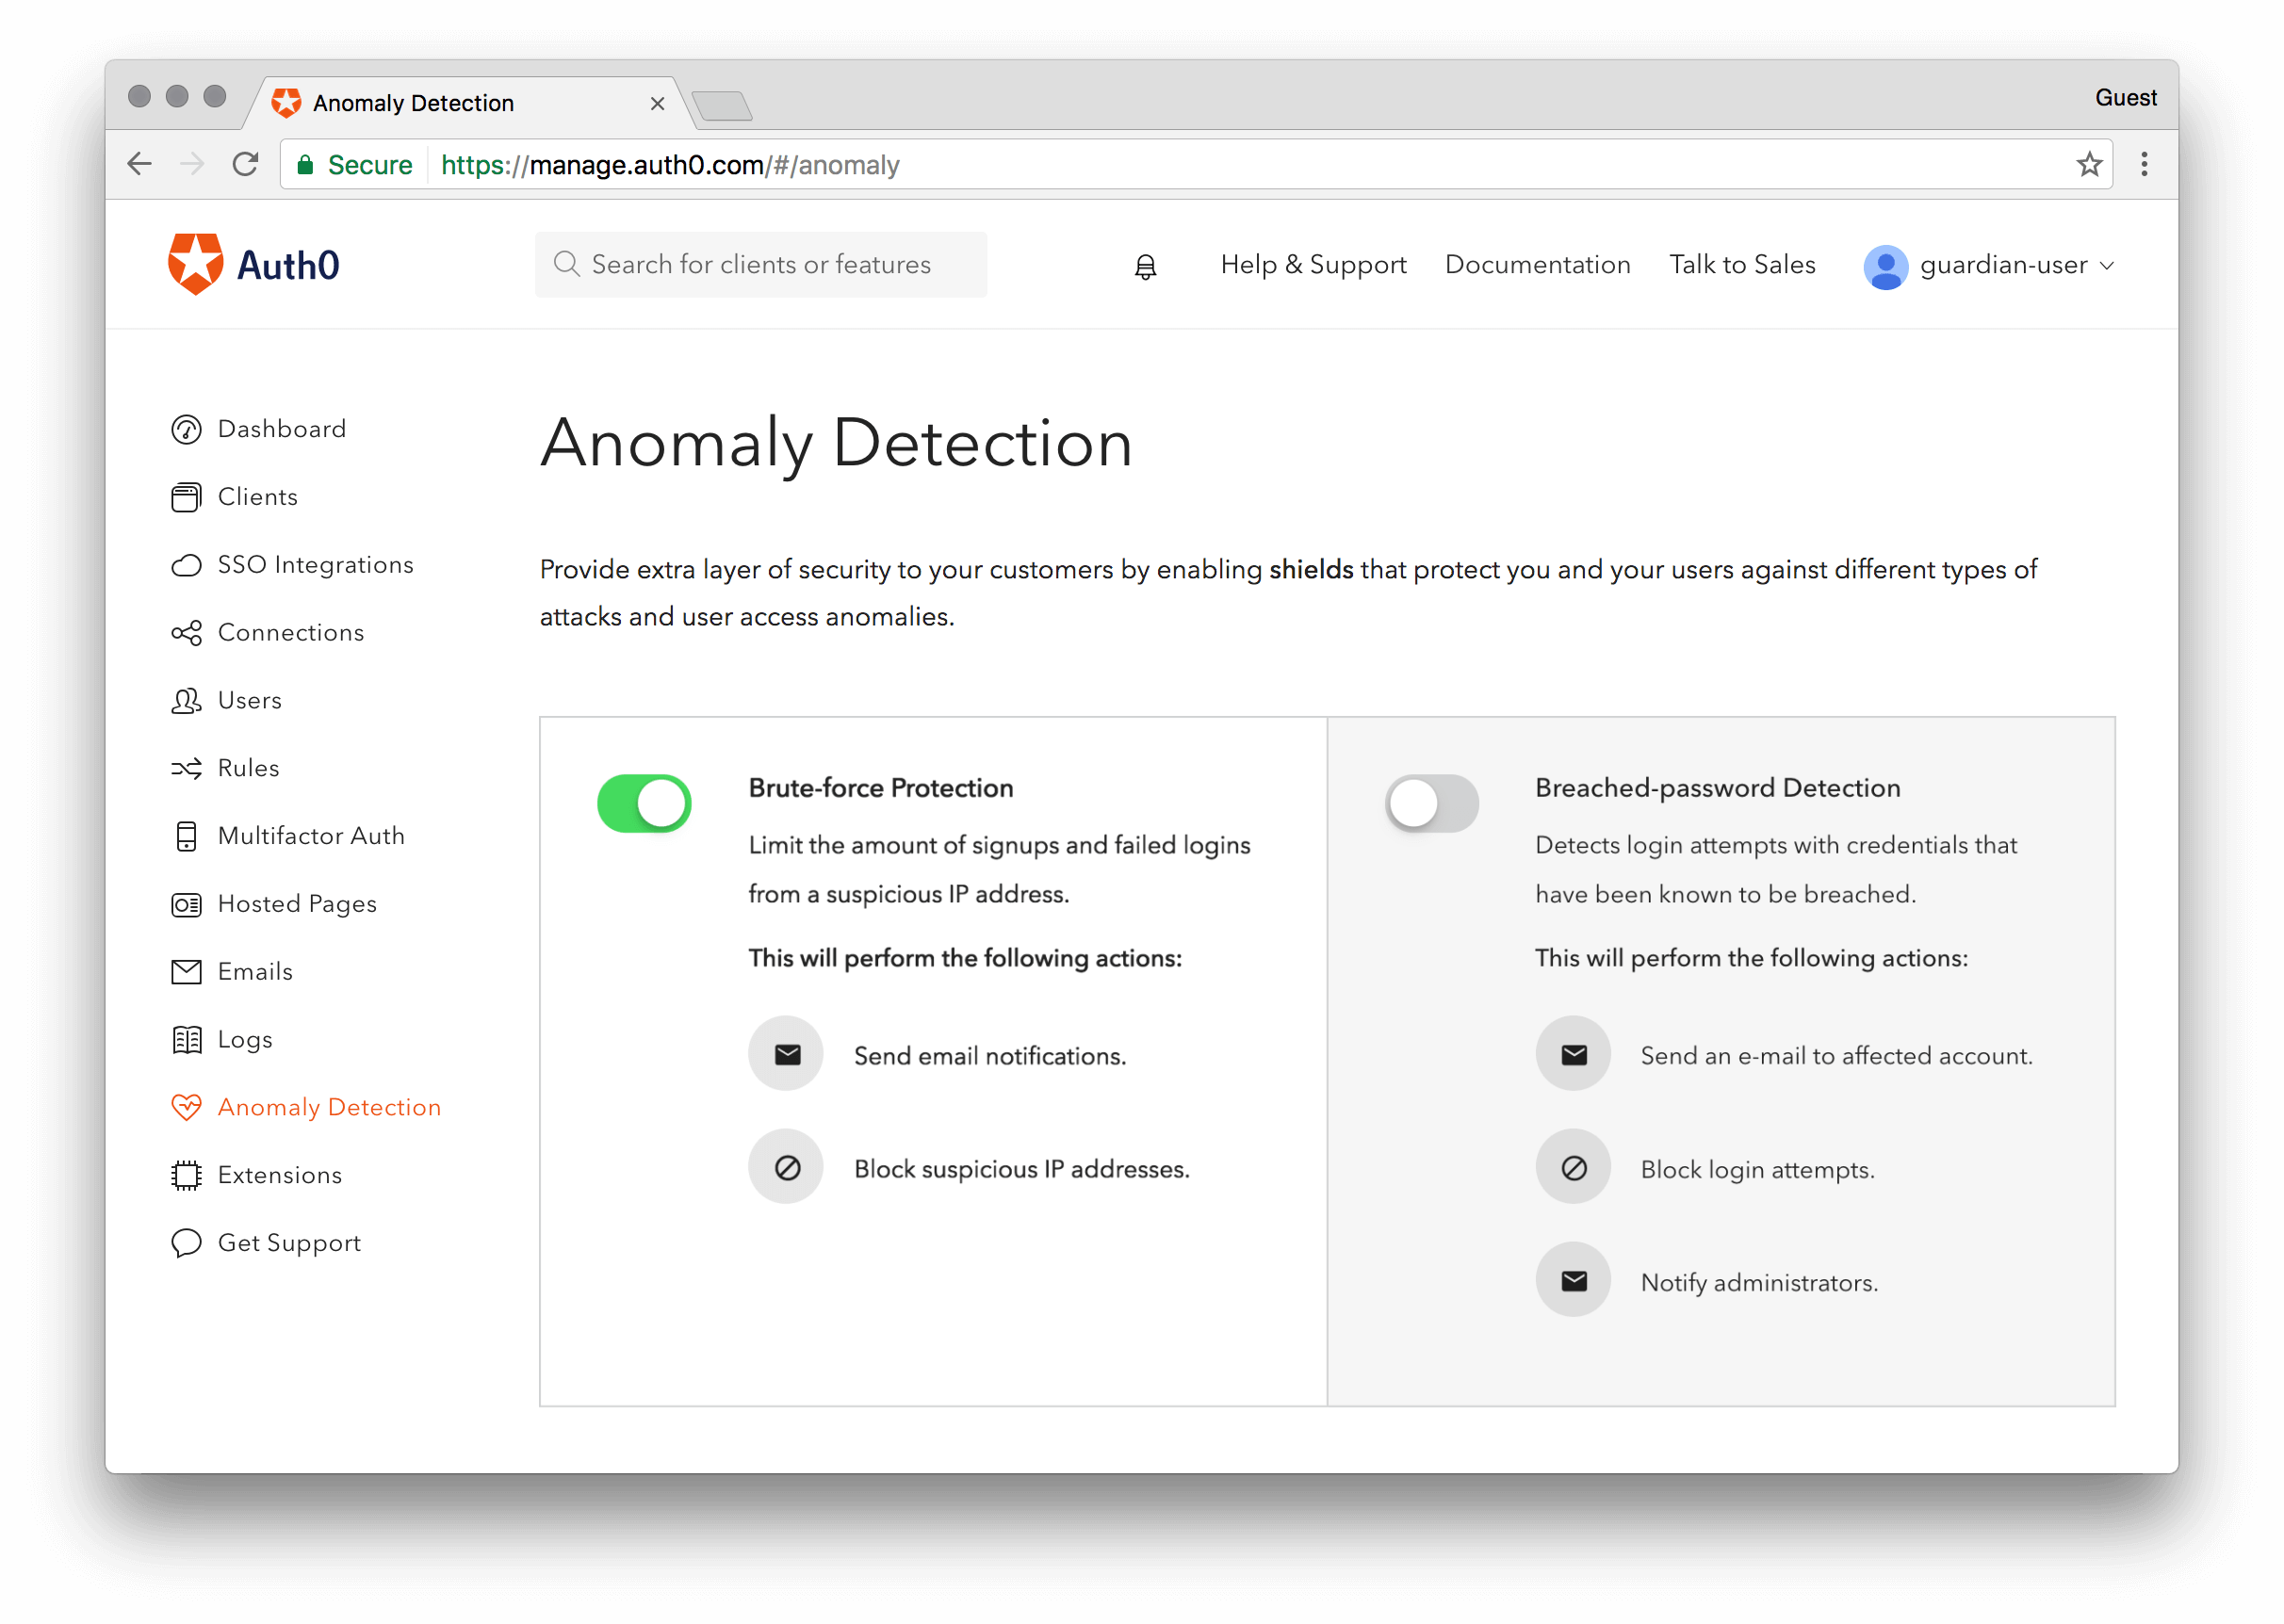 View of Auth0 Anomaly Detection interface